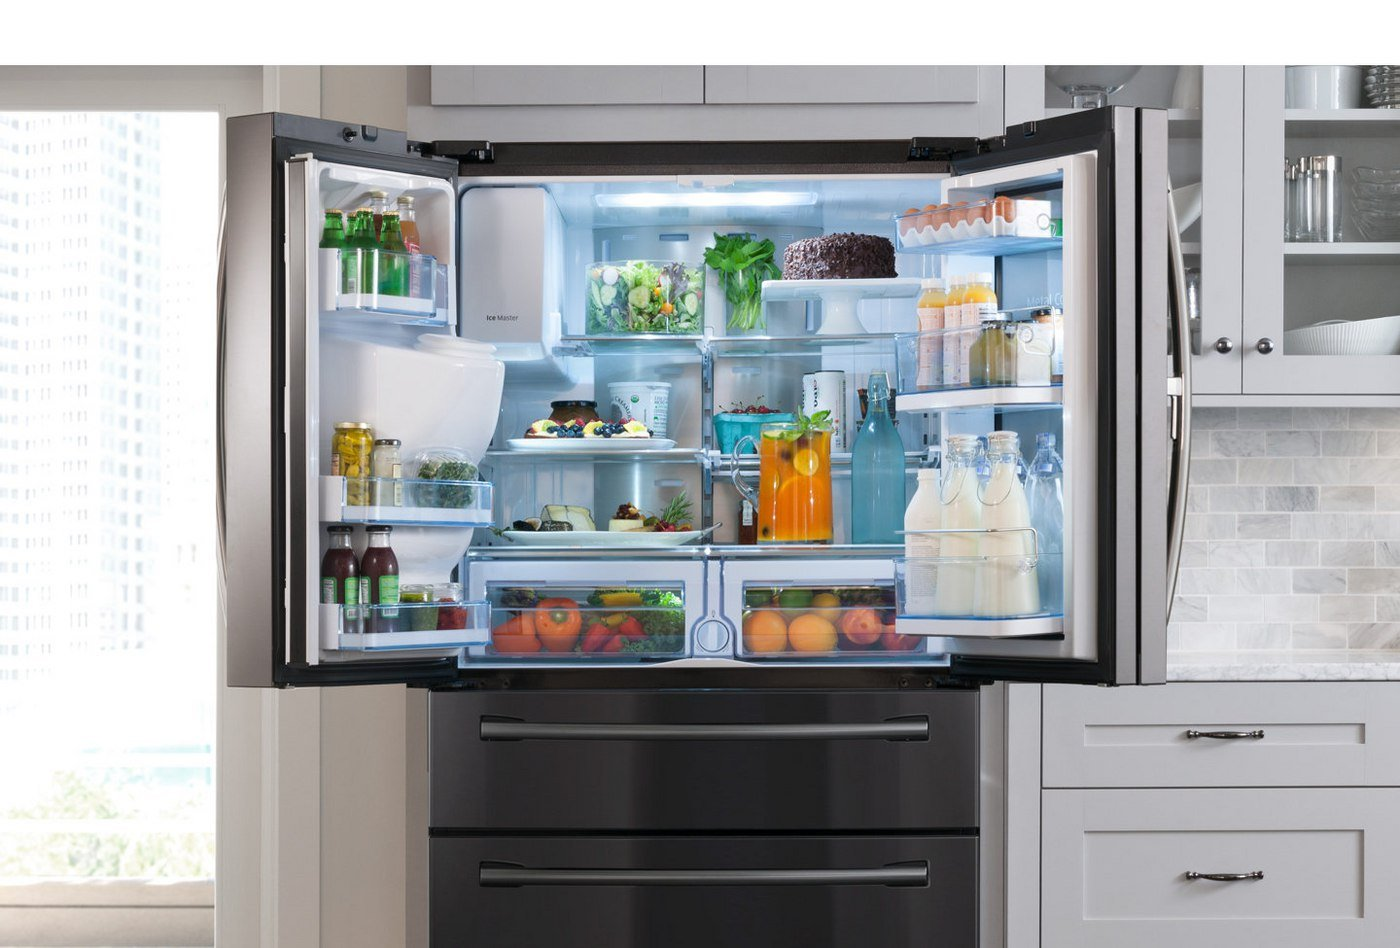 Uncategorized Samsung Kitchen Appliances Reviews are samsung appliances reliable reviews